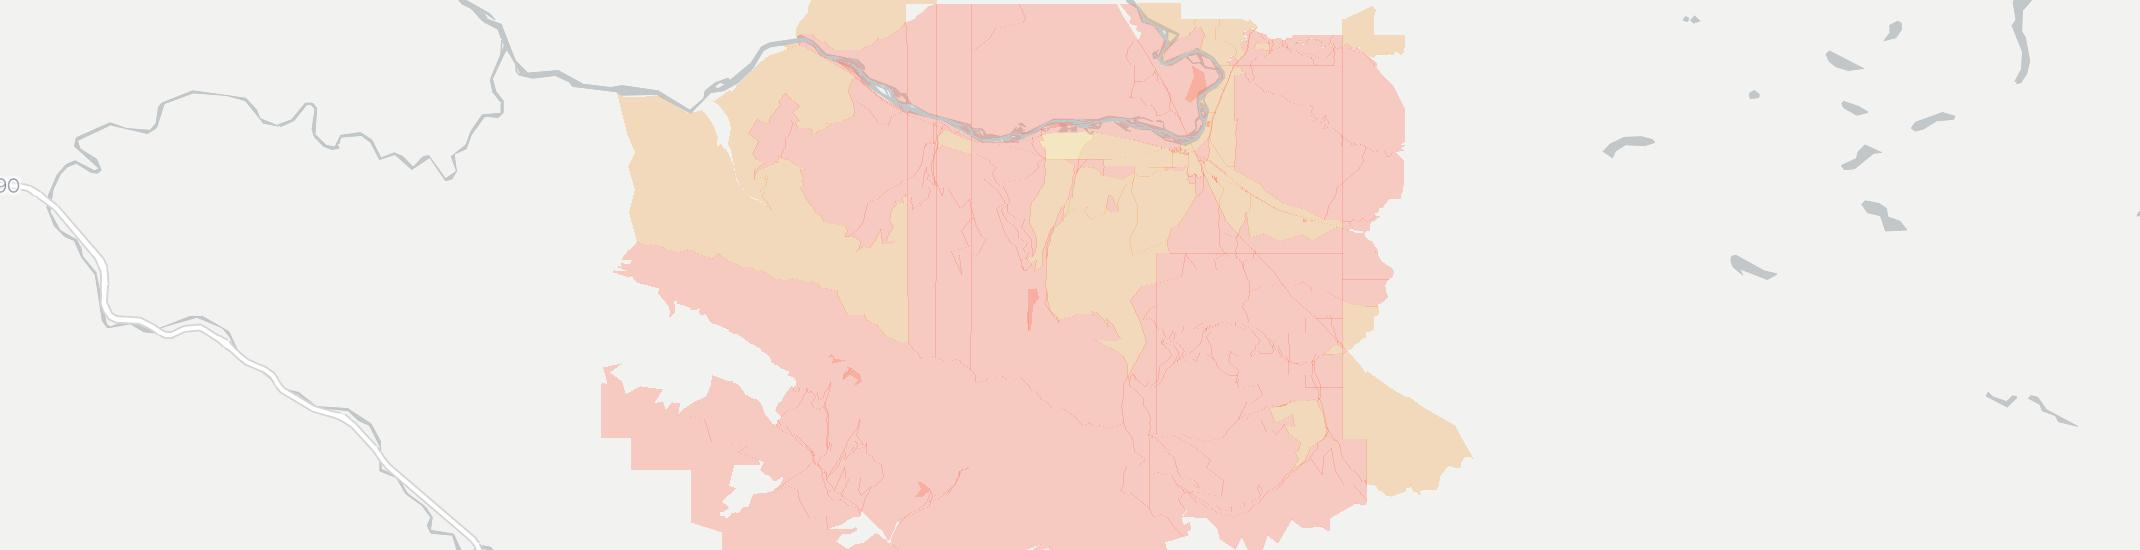 Dixon Internet Competition Map. Click for interactive map.